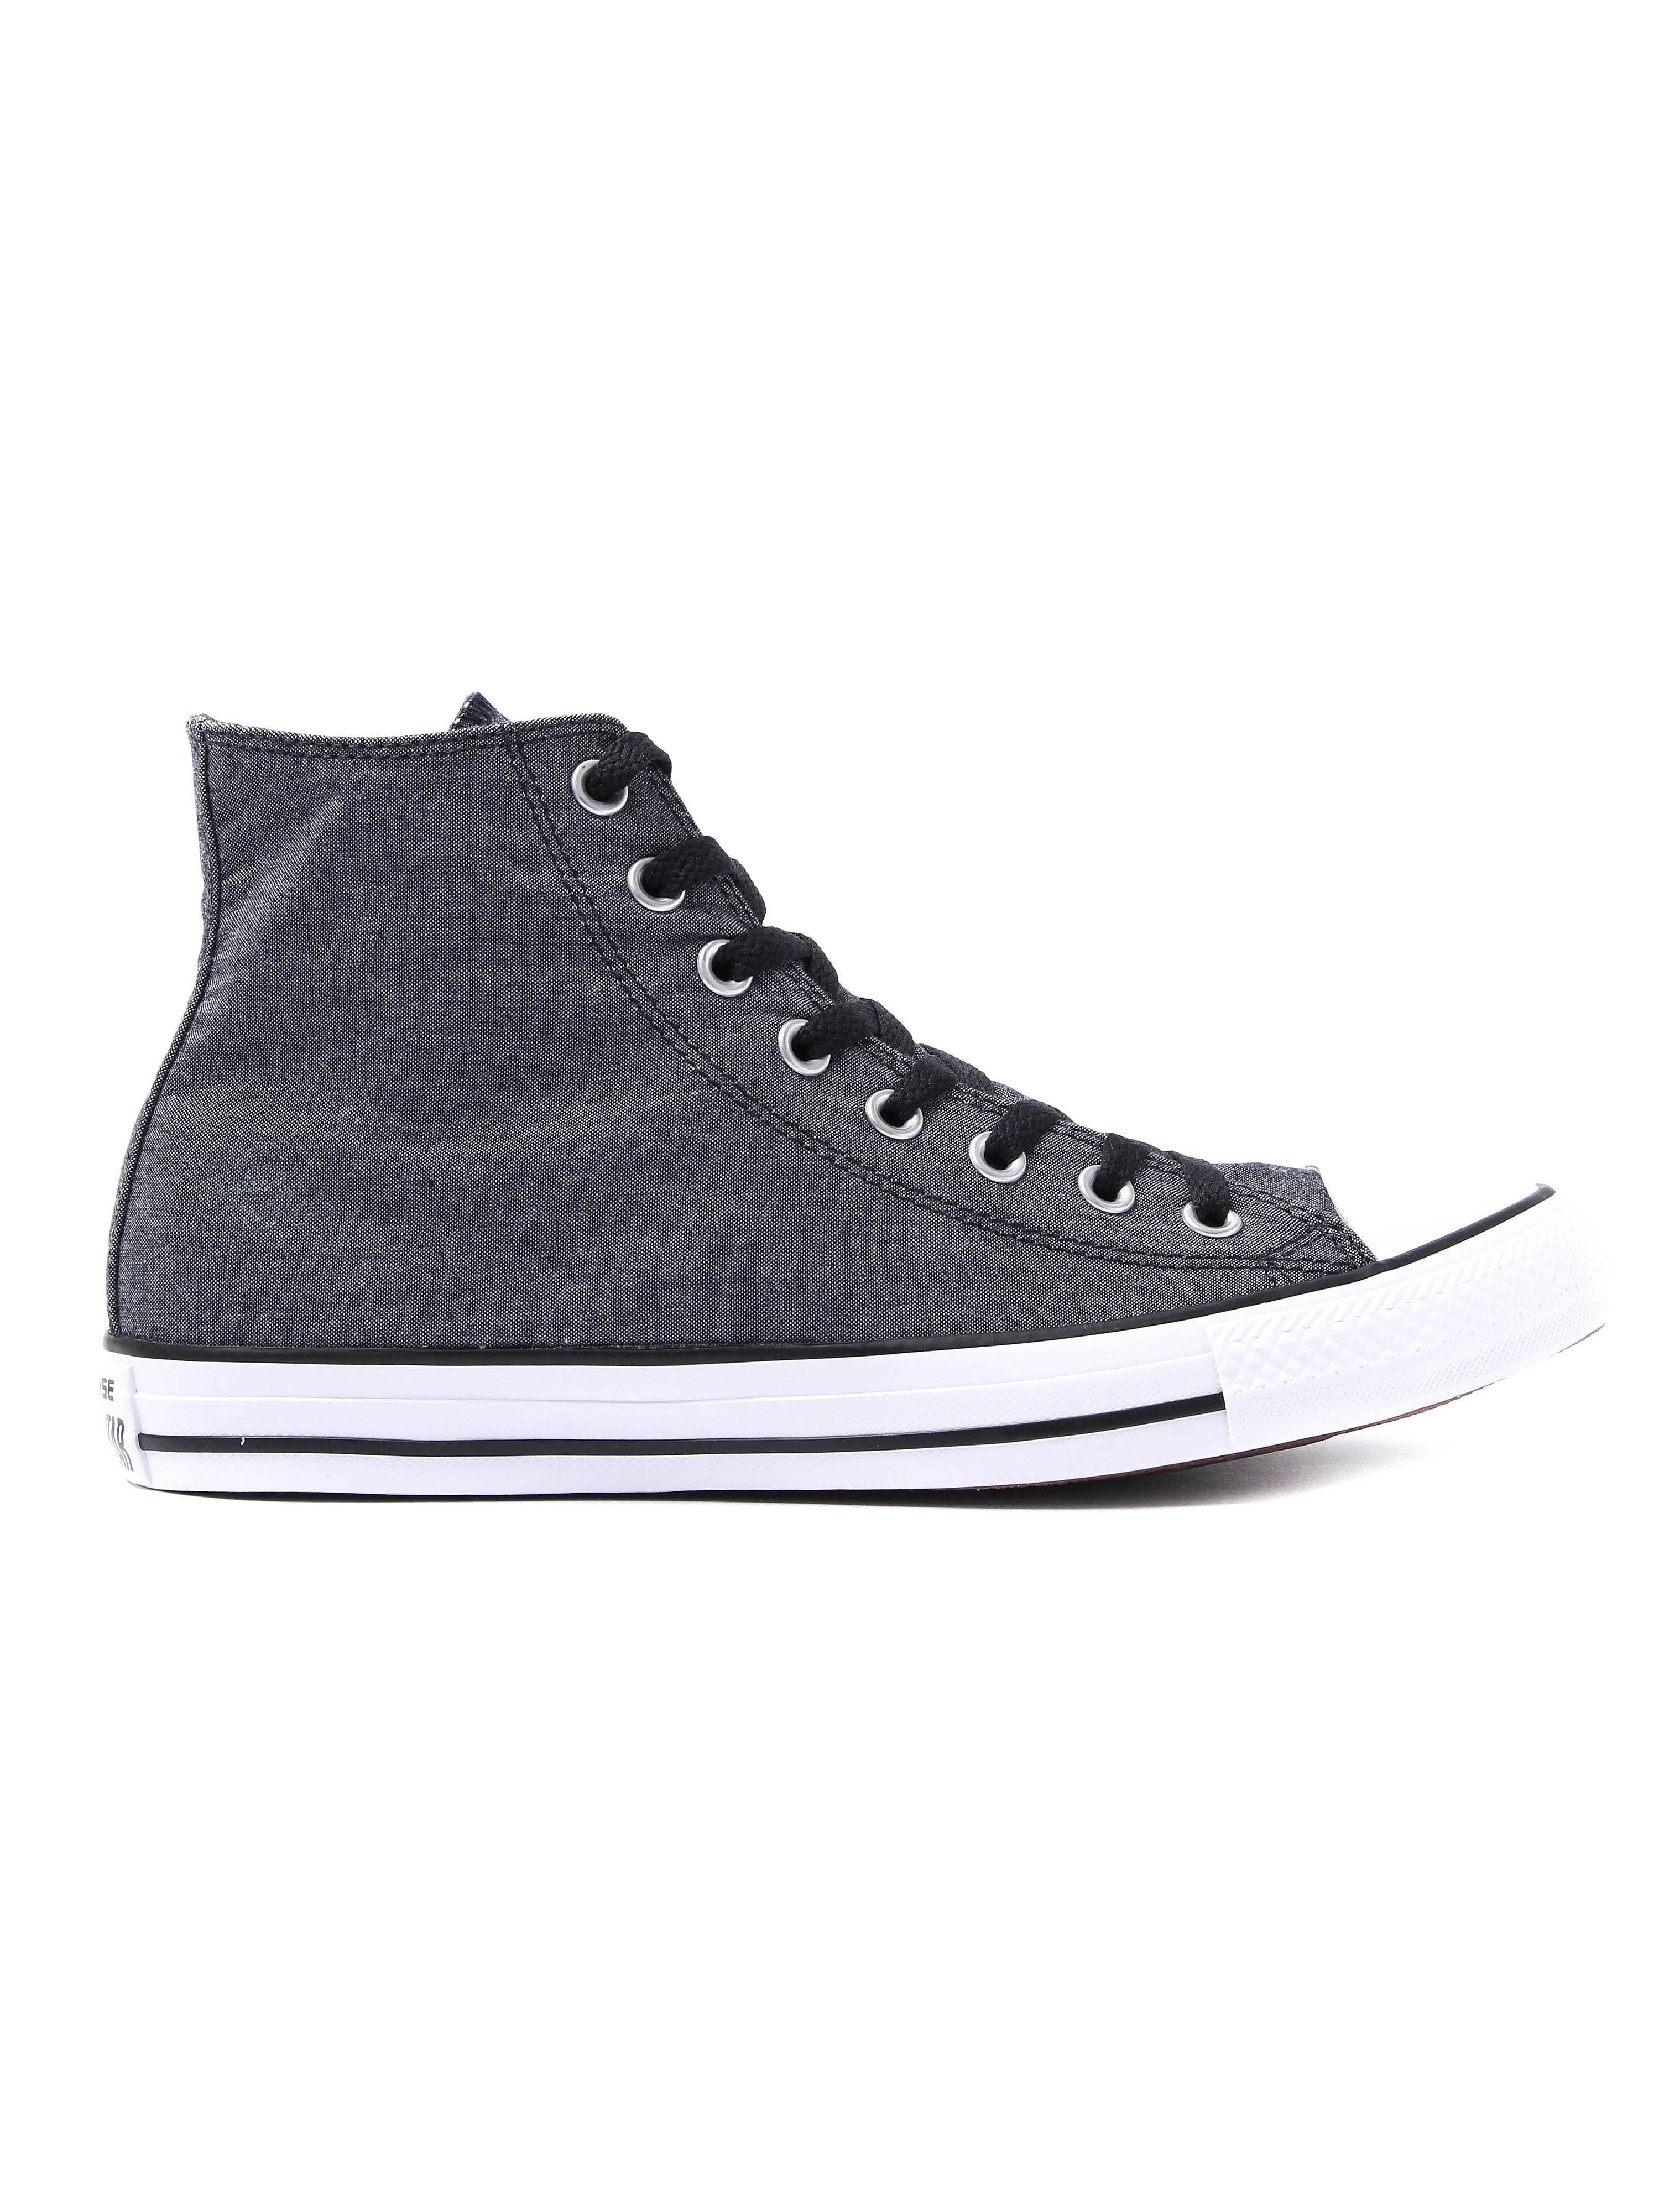 Converse Men's Chuck Taylor All Star HI Trainers - Black Chambray